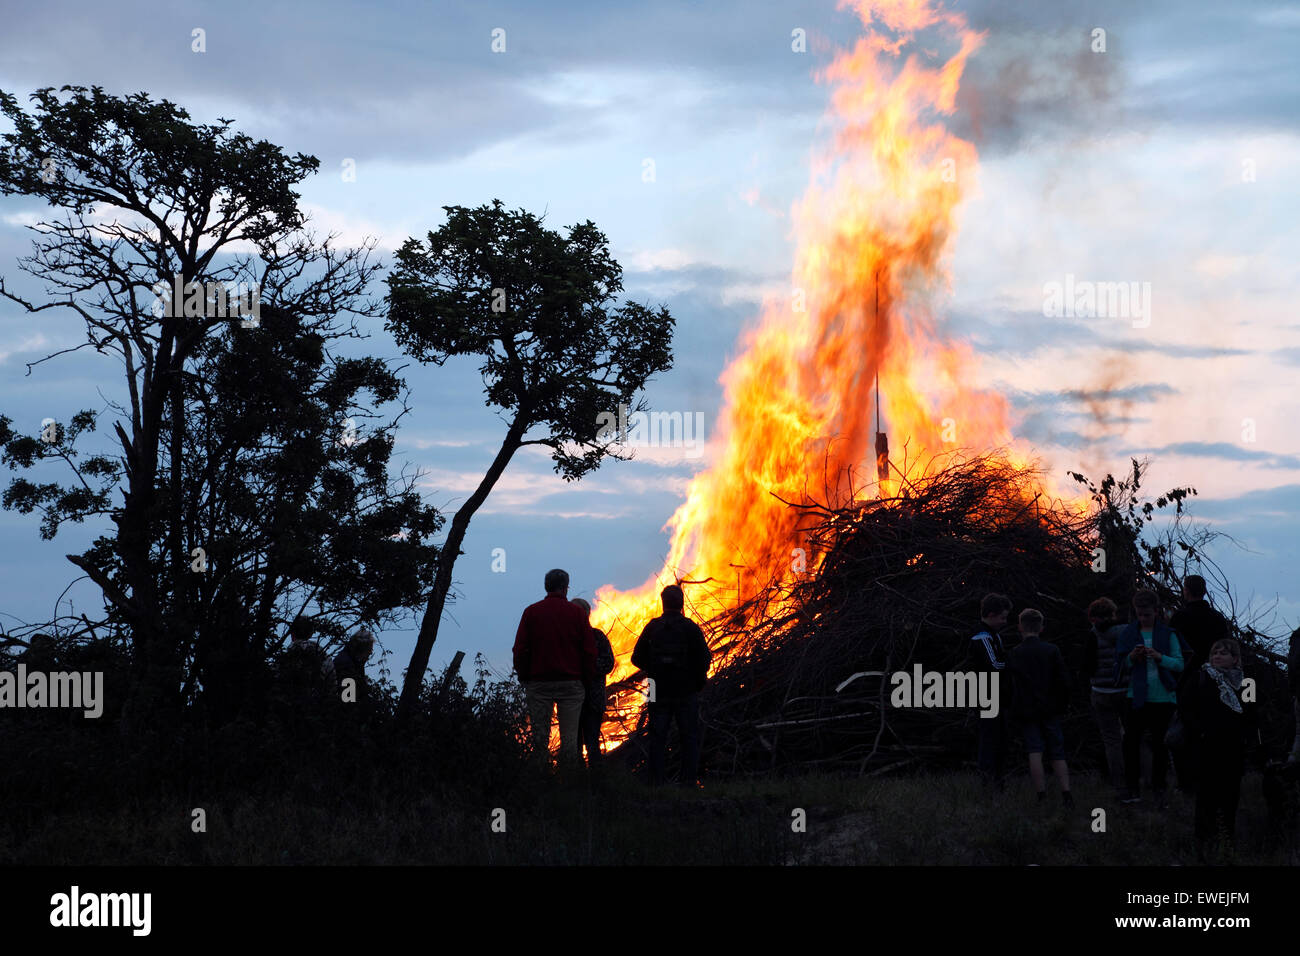 Bonfire on the beach at Nivaa Harbour in celebration of midsummer and St. John's Eve. - Stock Image